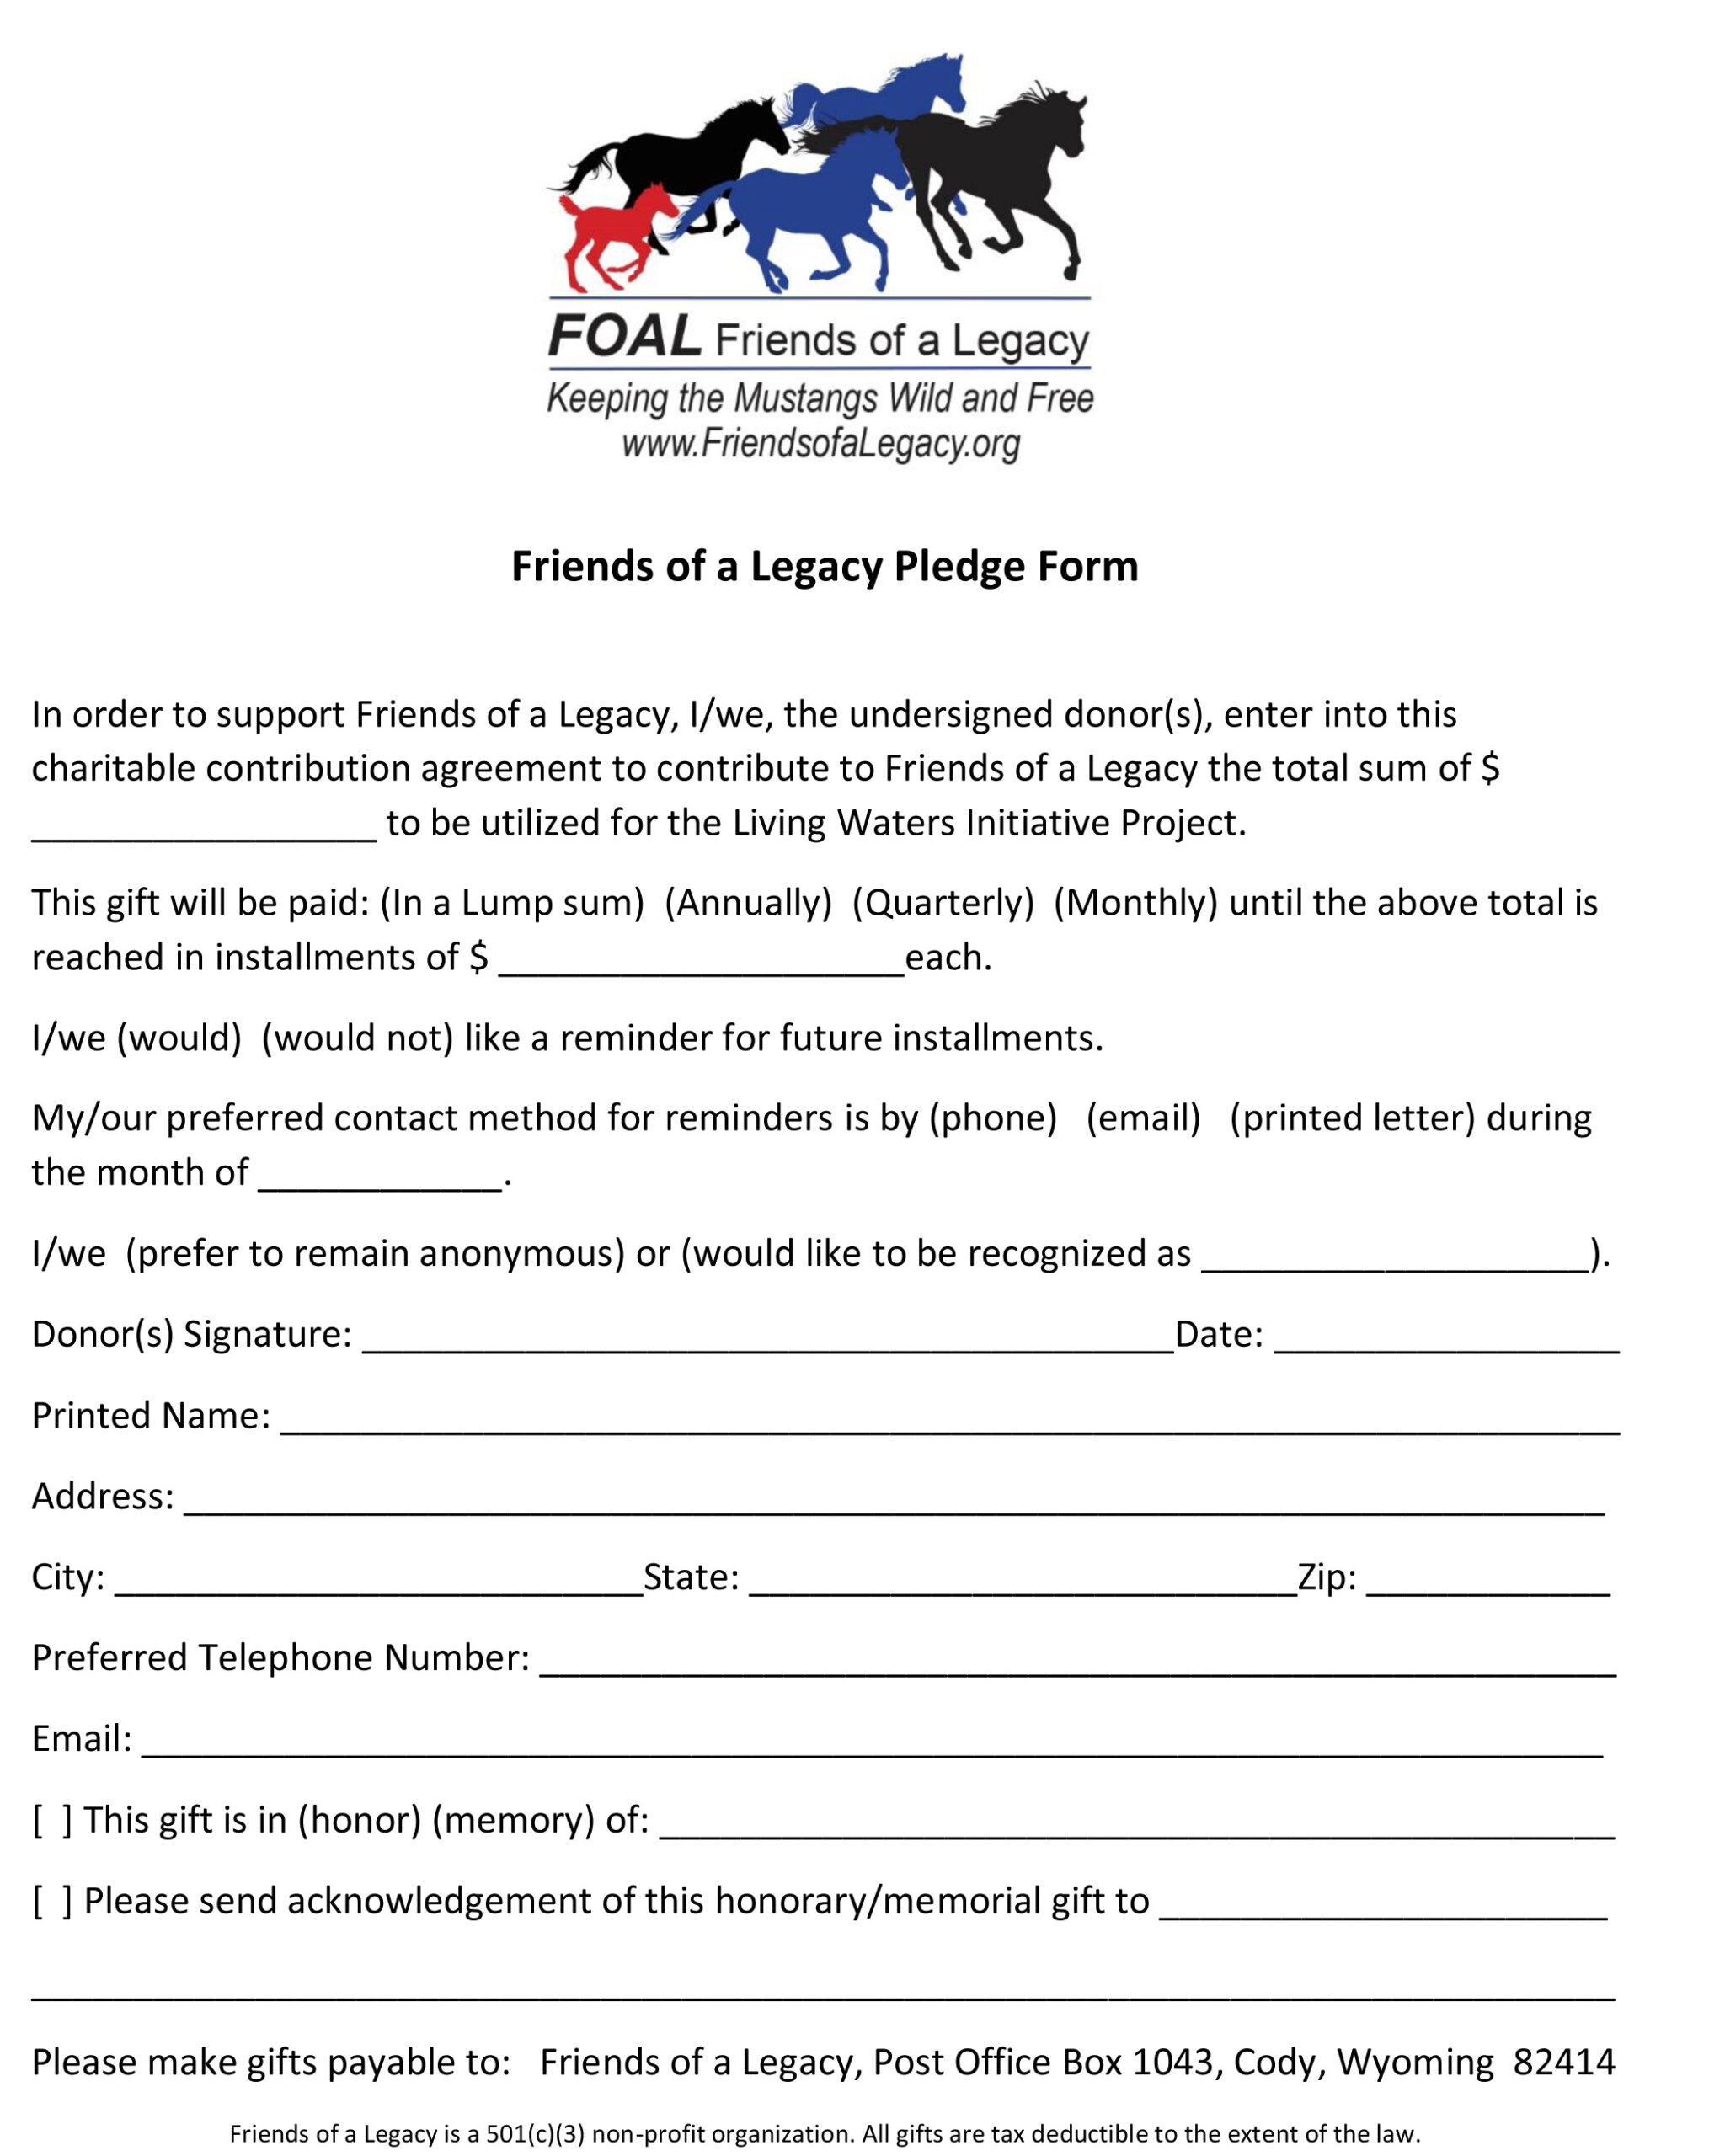 Friends of a Legacy Pledge Form